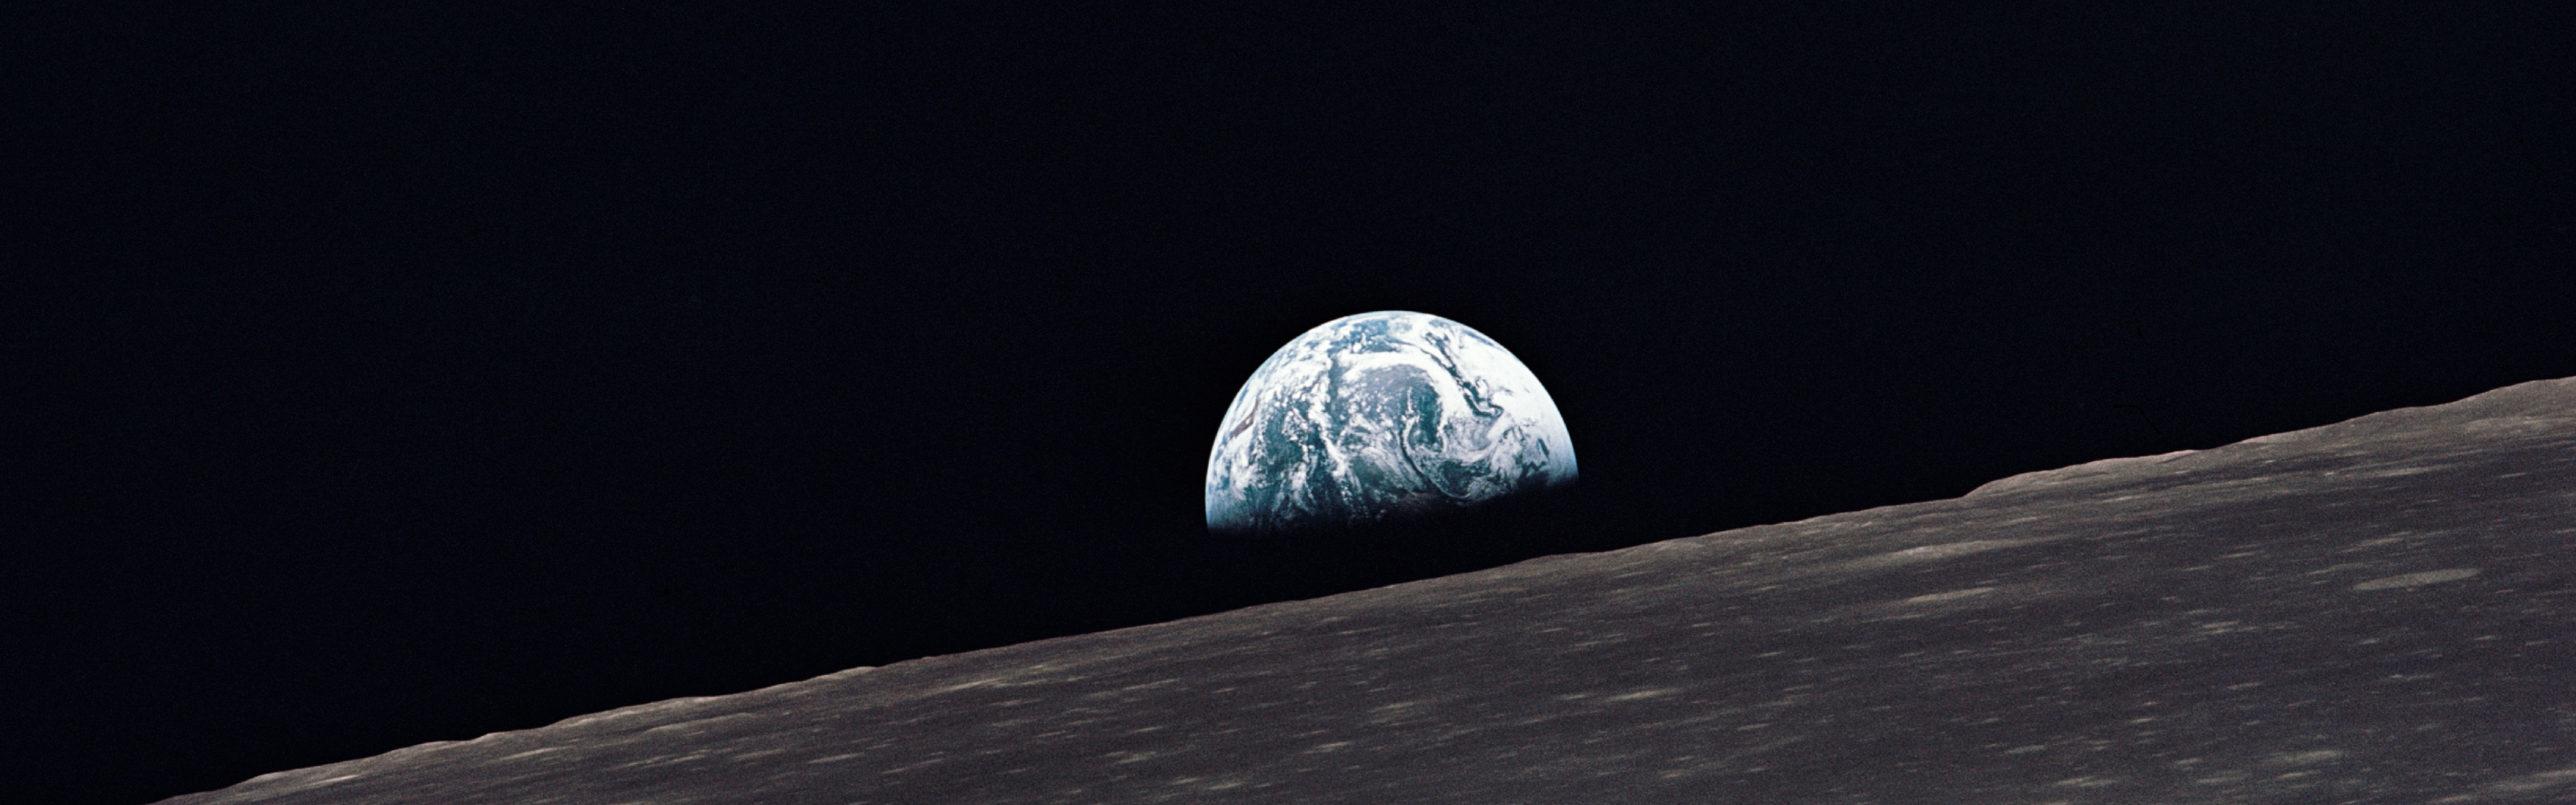 earthrise | dual monitor wallpapers | pinterest | monitor